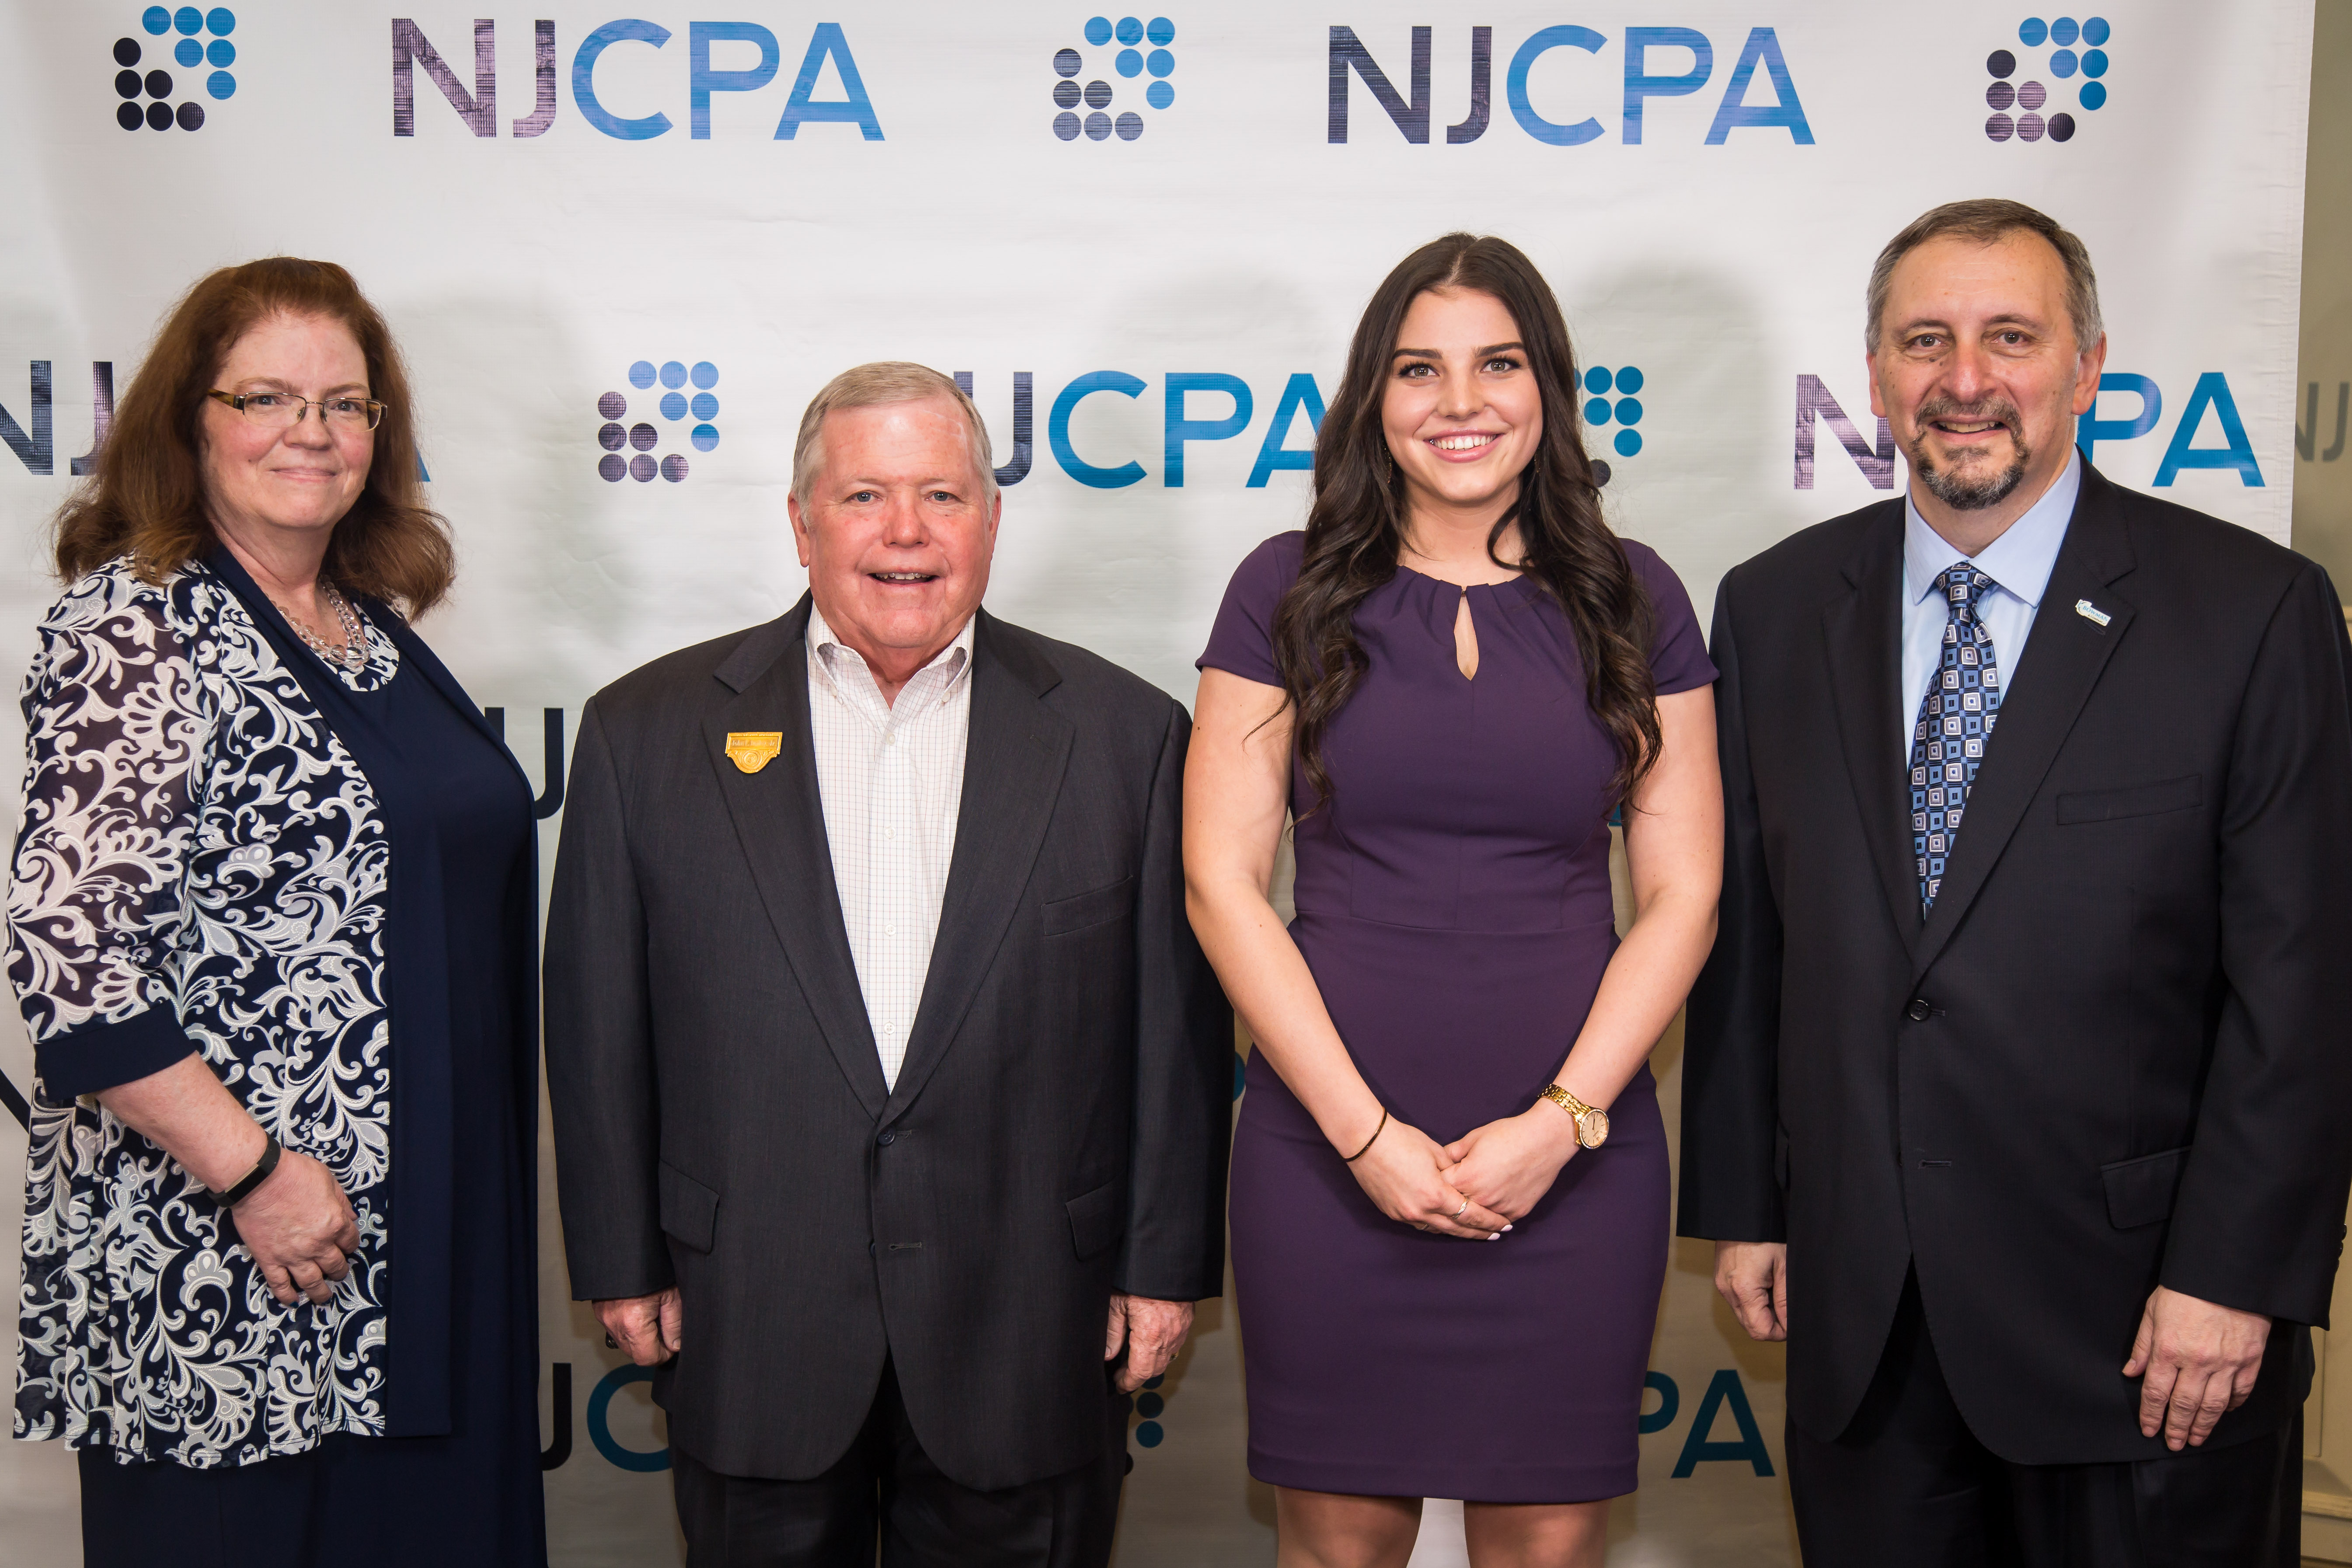 Bowman & Company Is Proud To Support The NJCPA 2019 Scholarship Winner